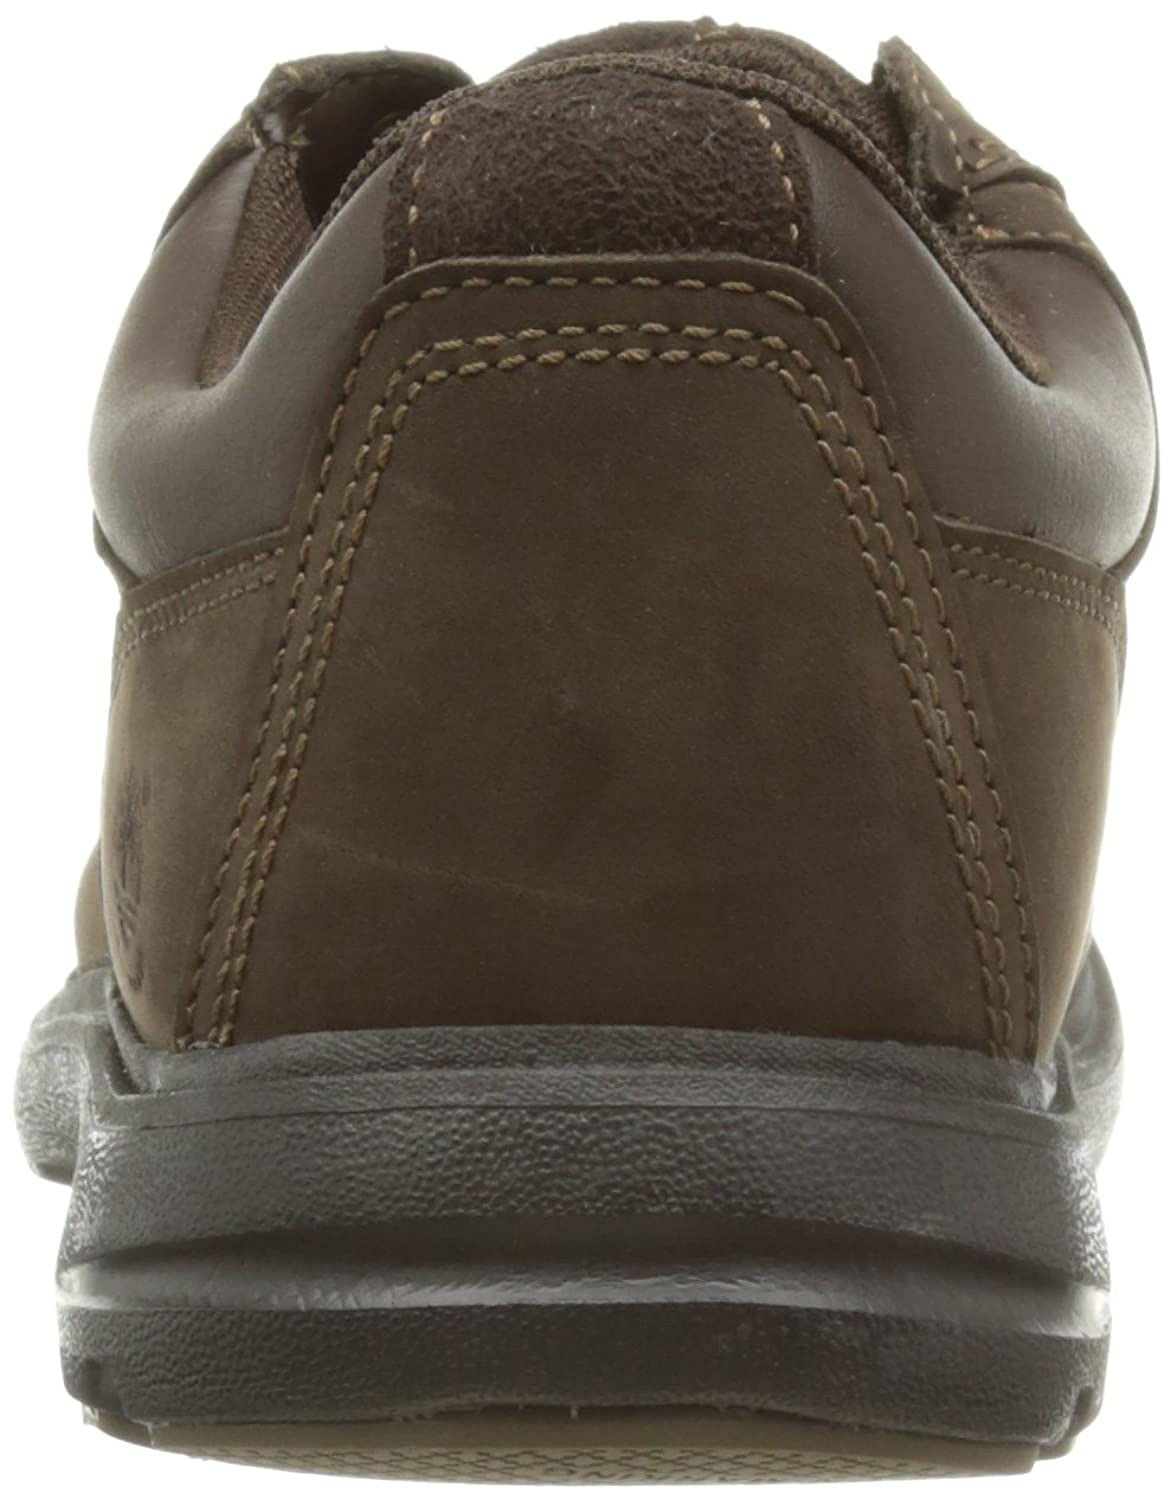 Timberland Ek Richmont Ftm_ek Richmont Gtx Moc Toe Oxford, Baskets Basses  homme: Amazon.fr: Chaussures et Sacs